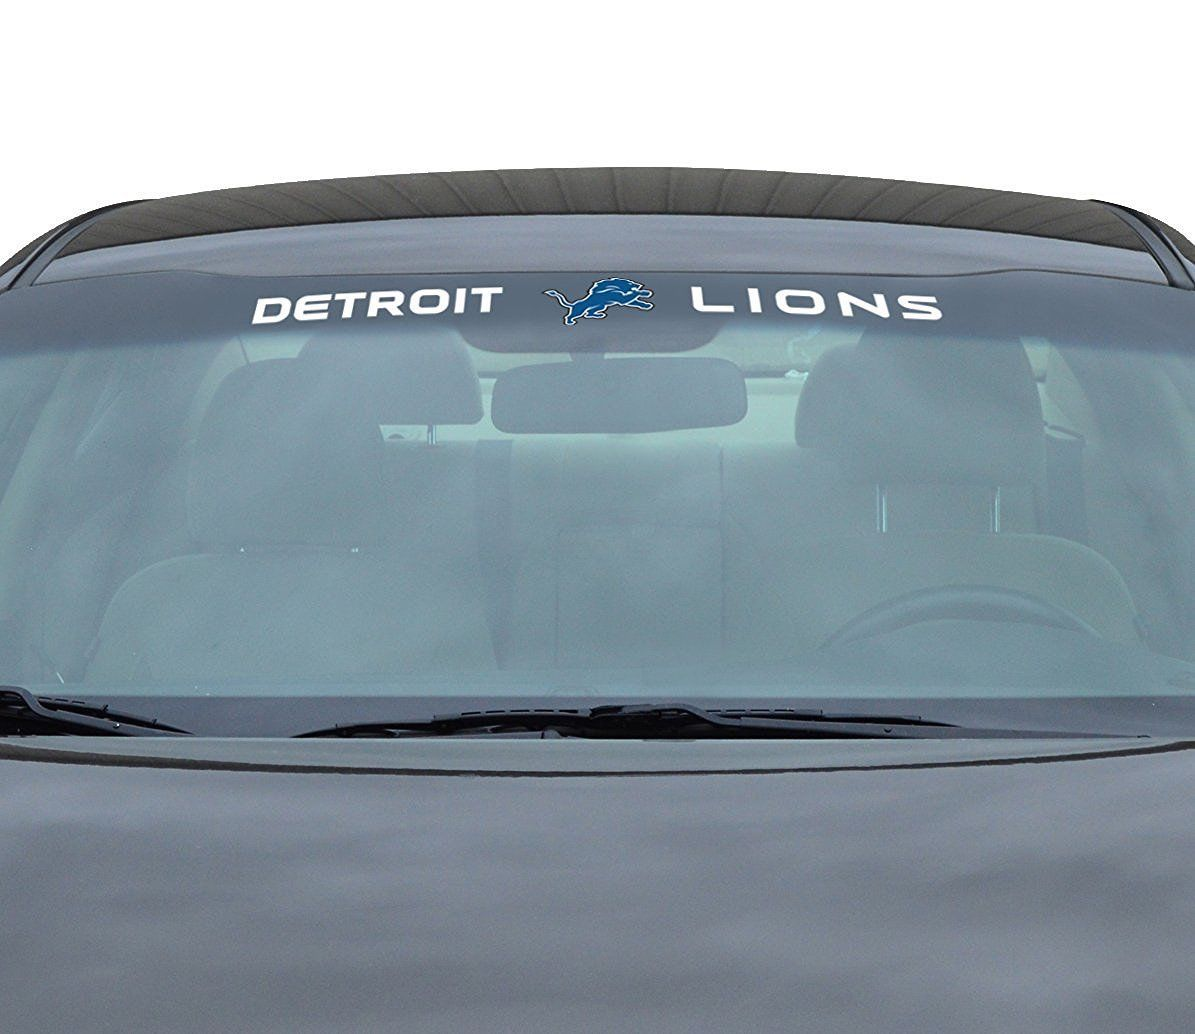 "DETROIT LIONS 35"" X 4"" WINDSHIELD REAR WINDOW DECAL CAR SUV NFL FOOTBALL"